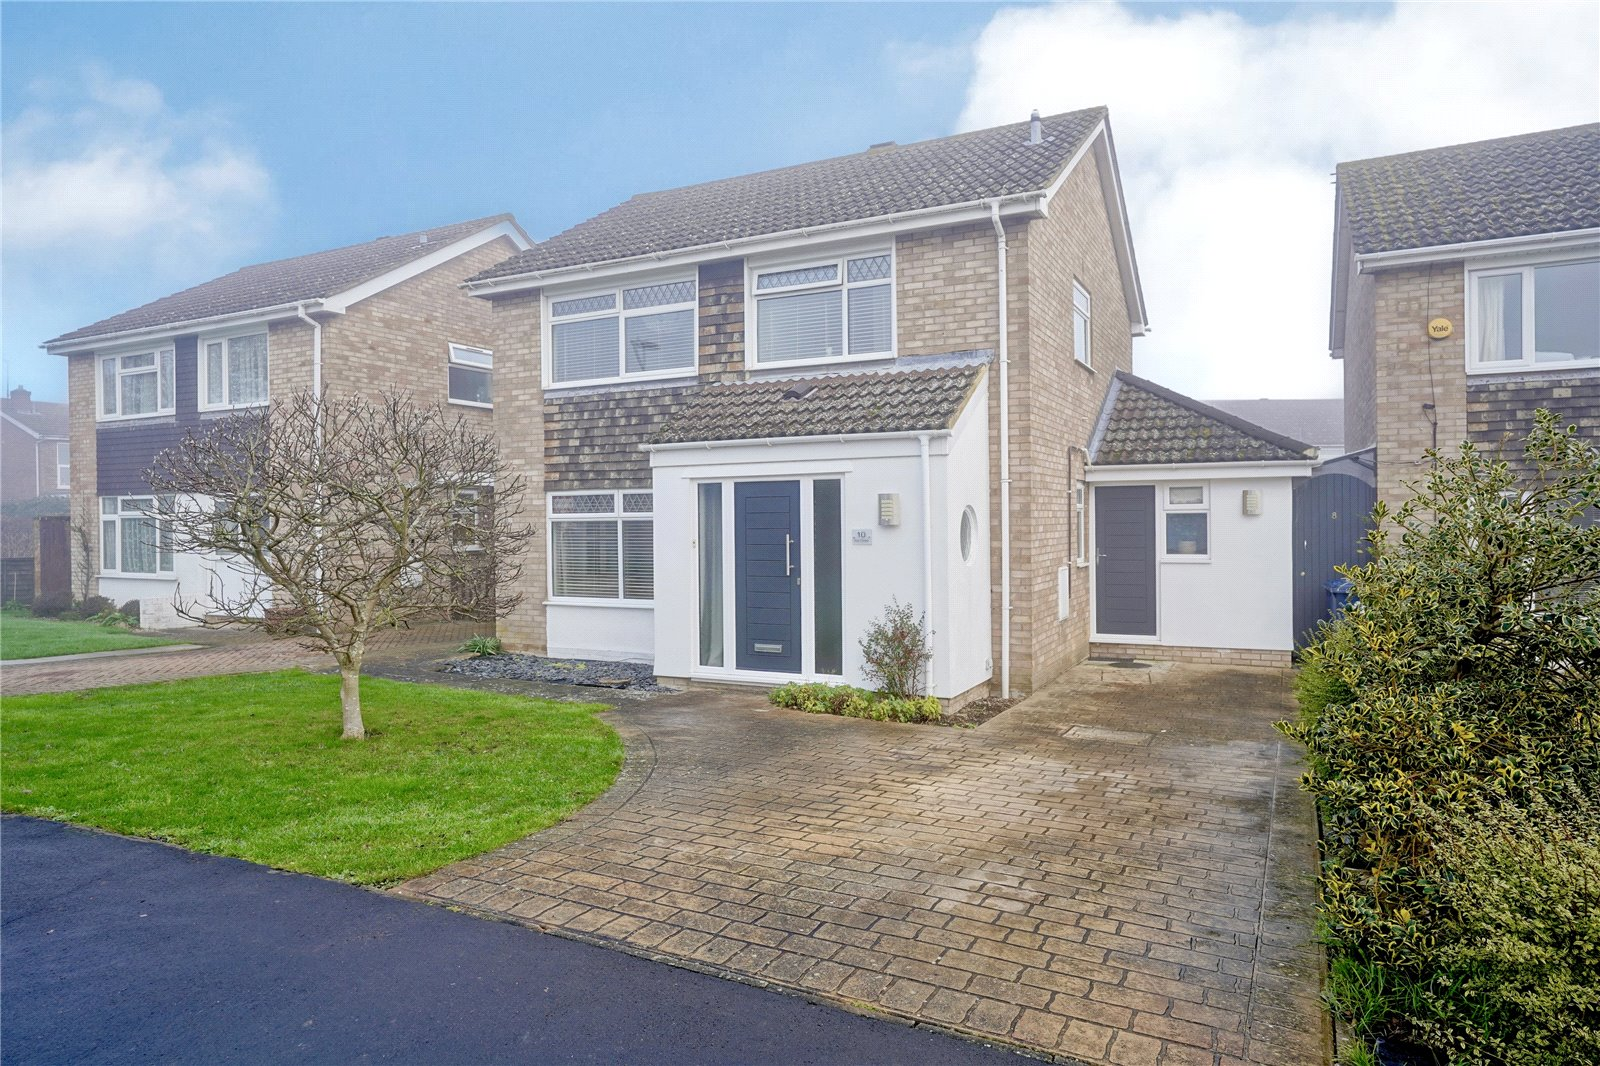 4 bed house for sale in St. Ives, PE27 6SU - Property Image 1